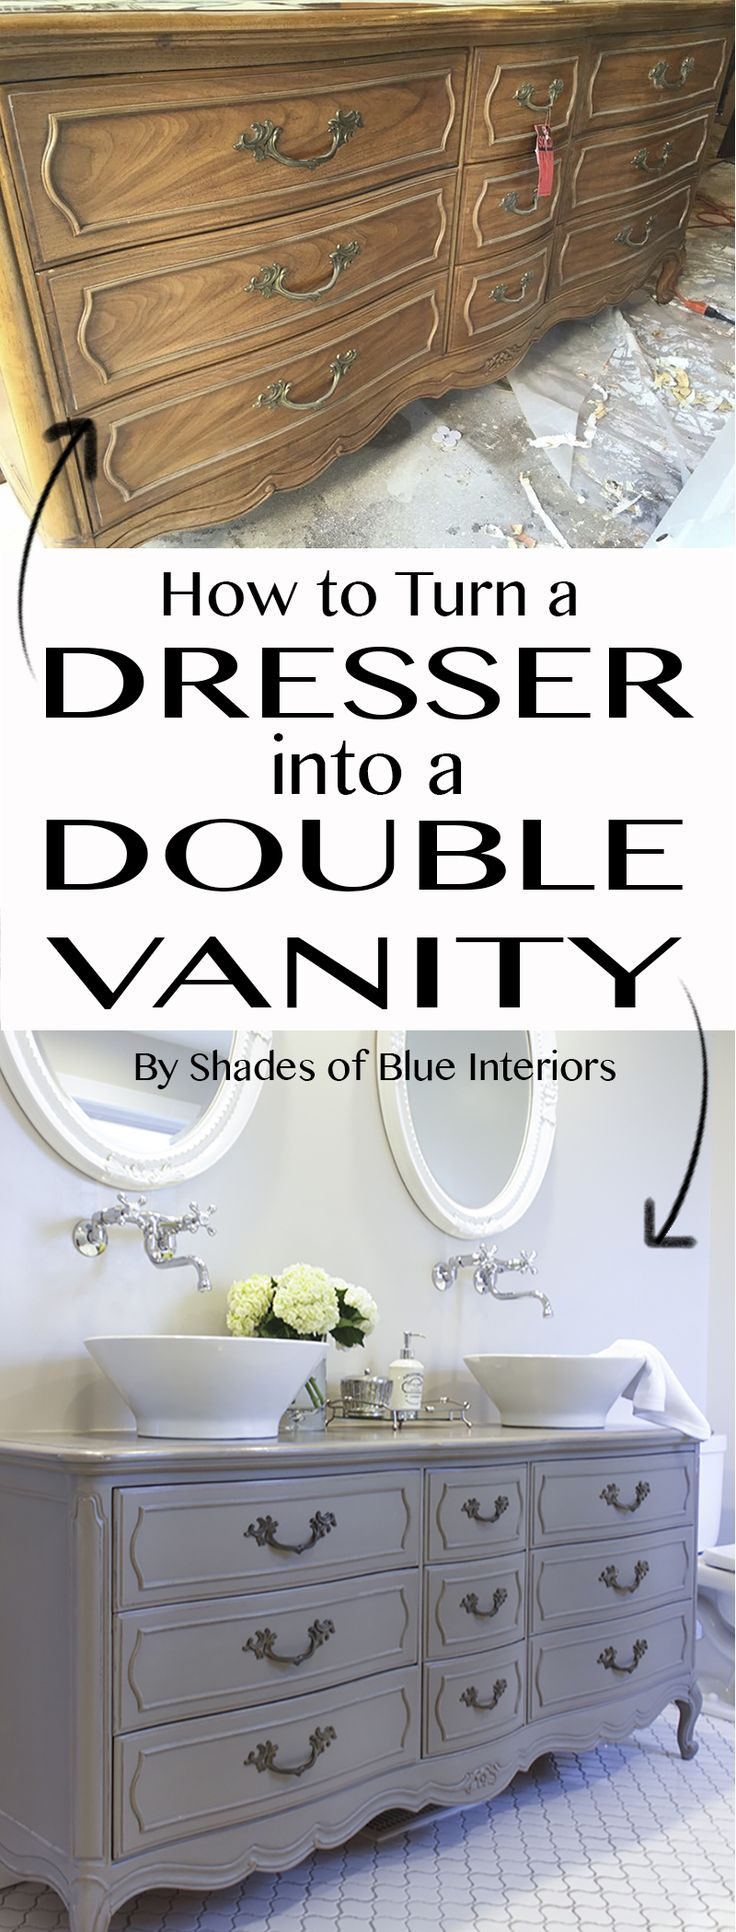 How to Turn a Dresser into a Double Vanity